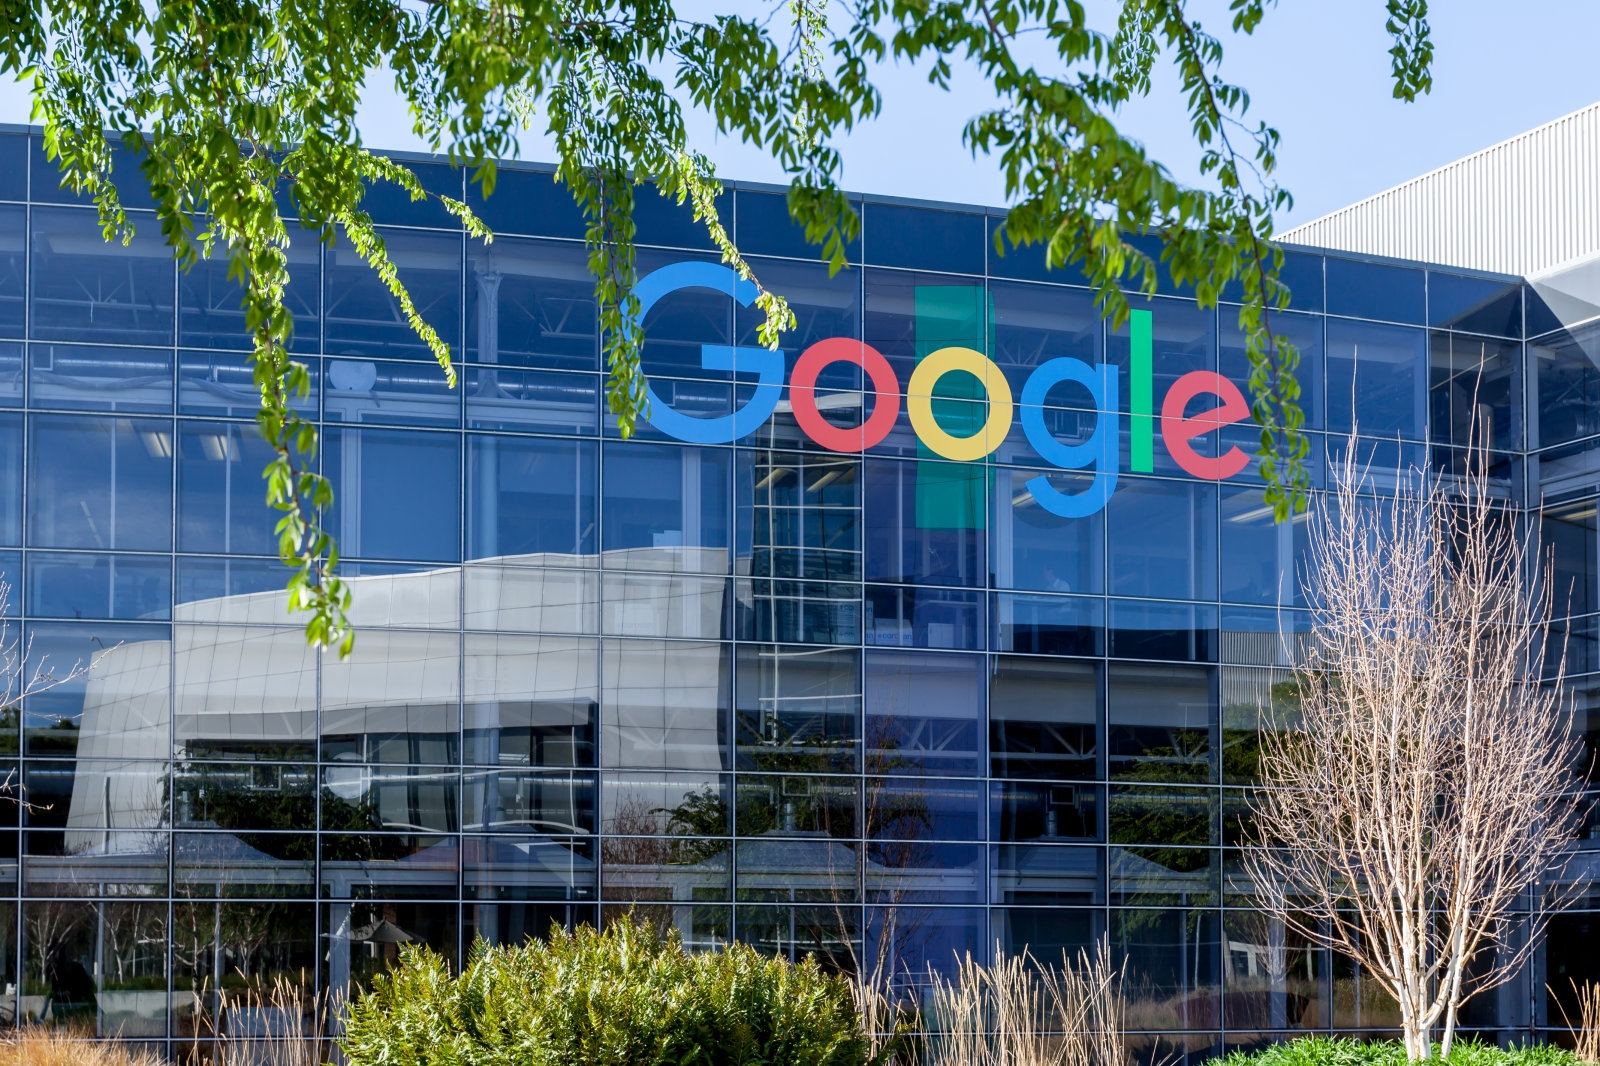 Google will pay $11 million to settle hundreds of age discrimination suits | DeviceDaily.com